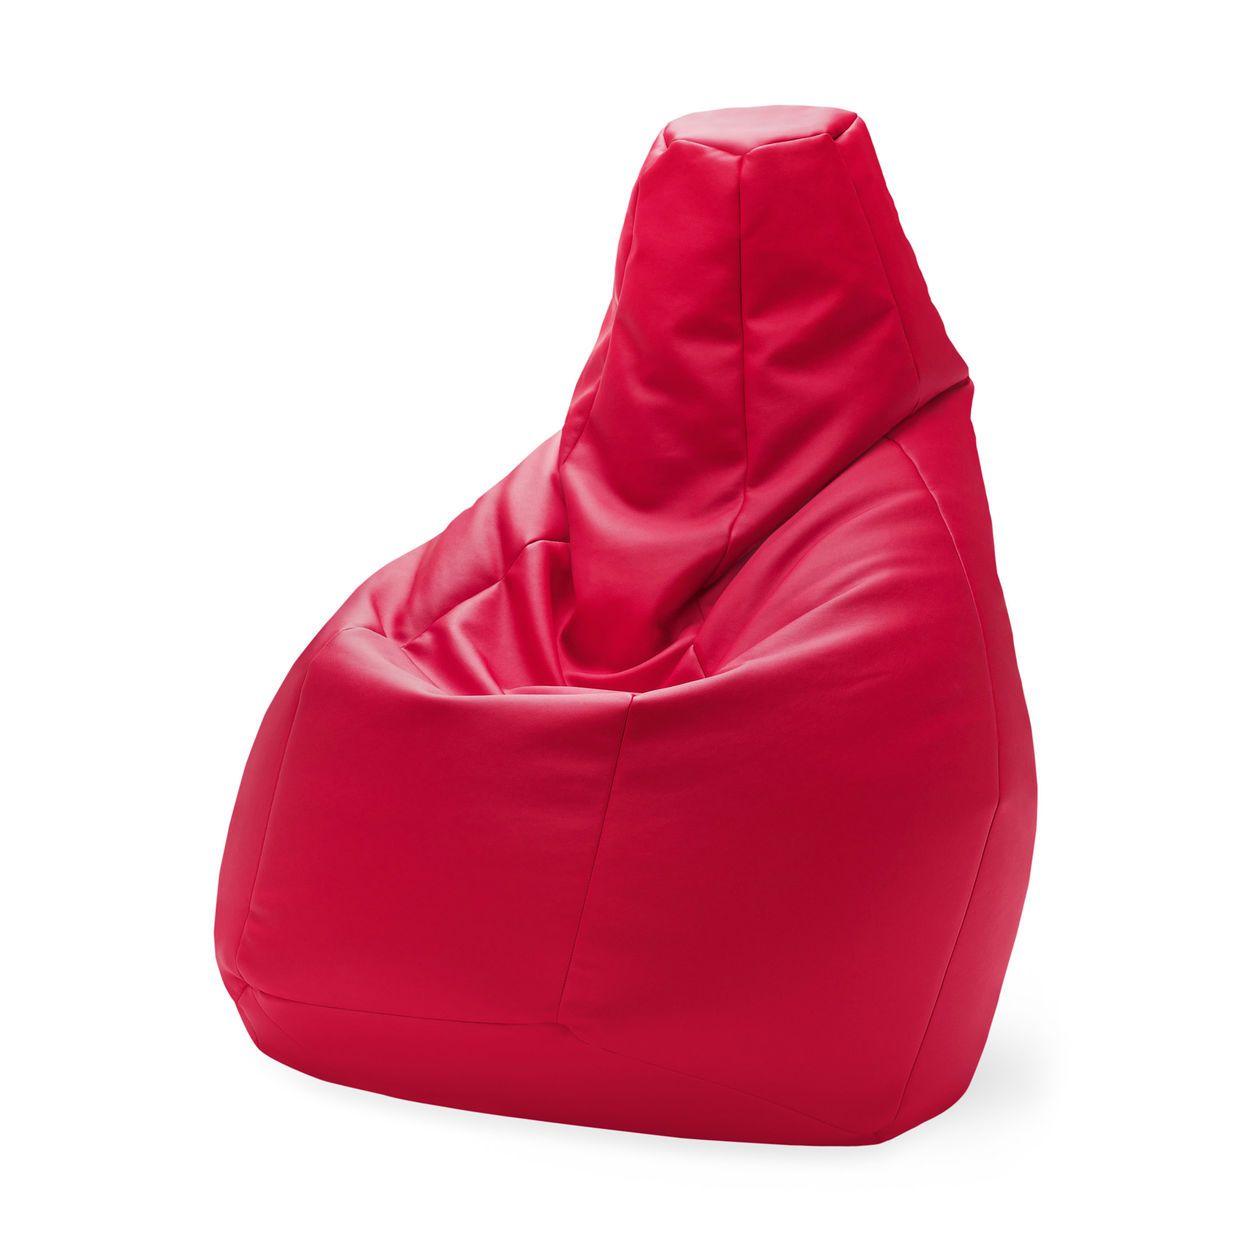 Sacco Chair Red In Color Red Amazing Design